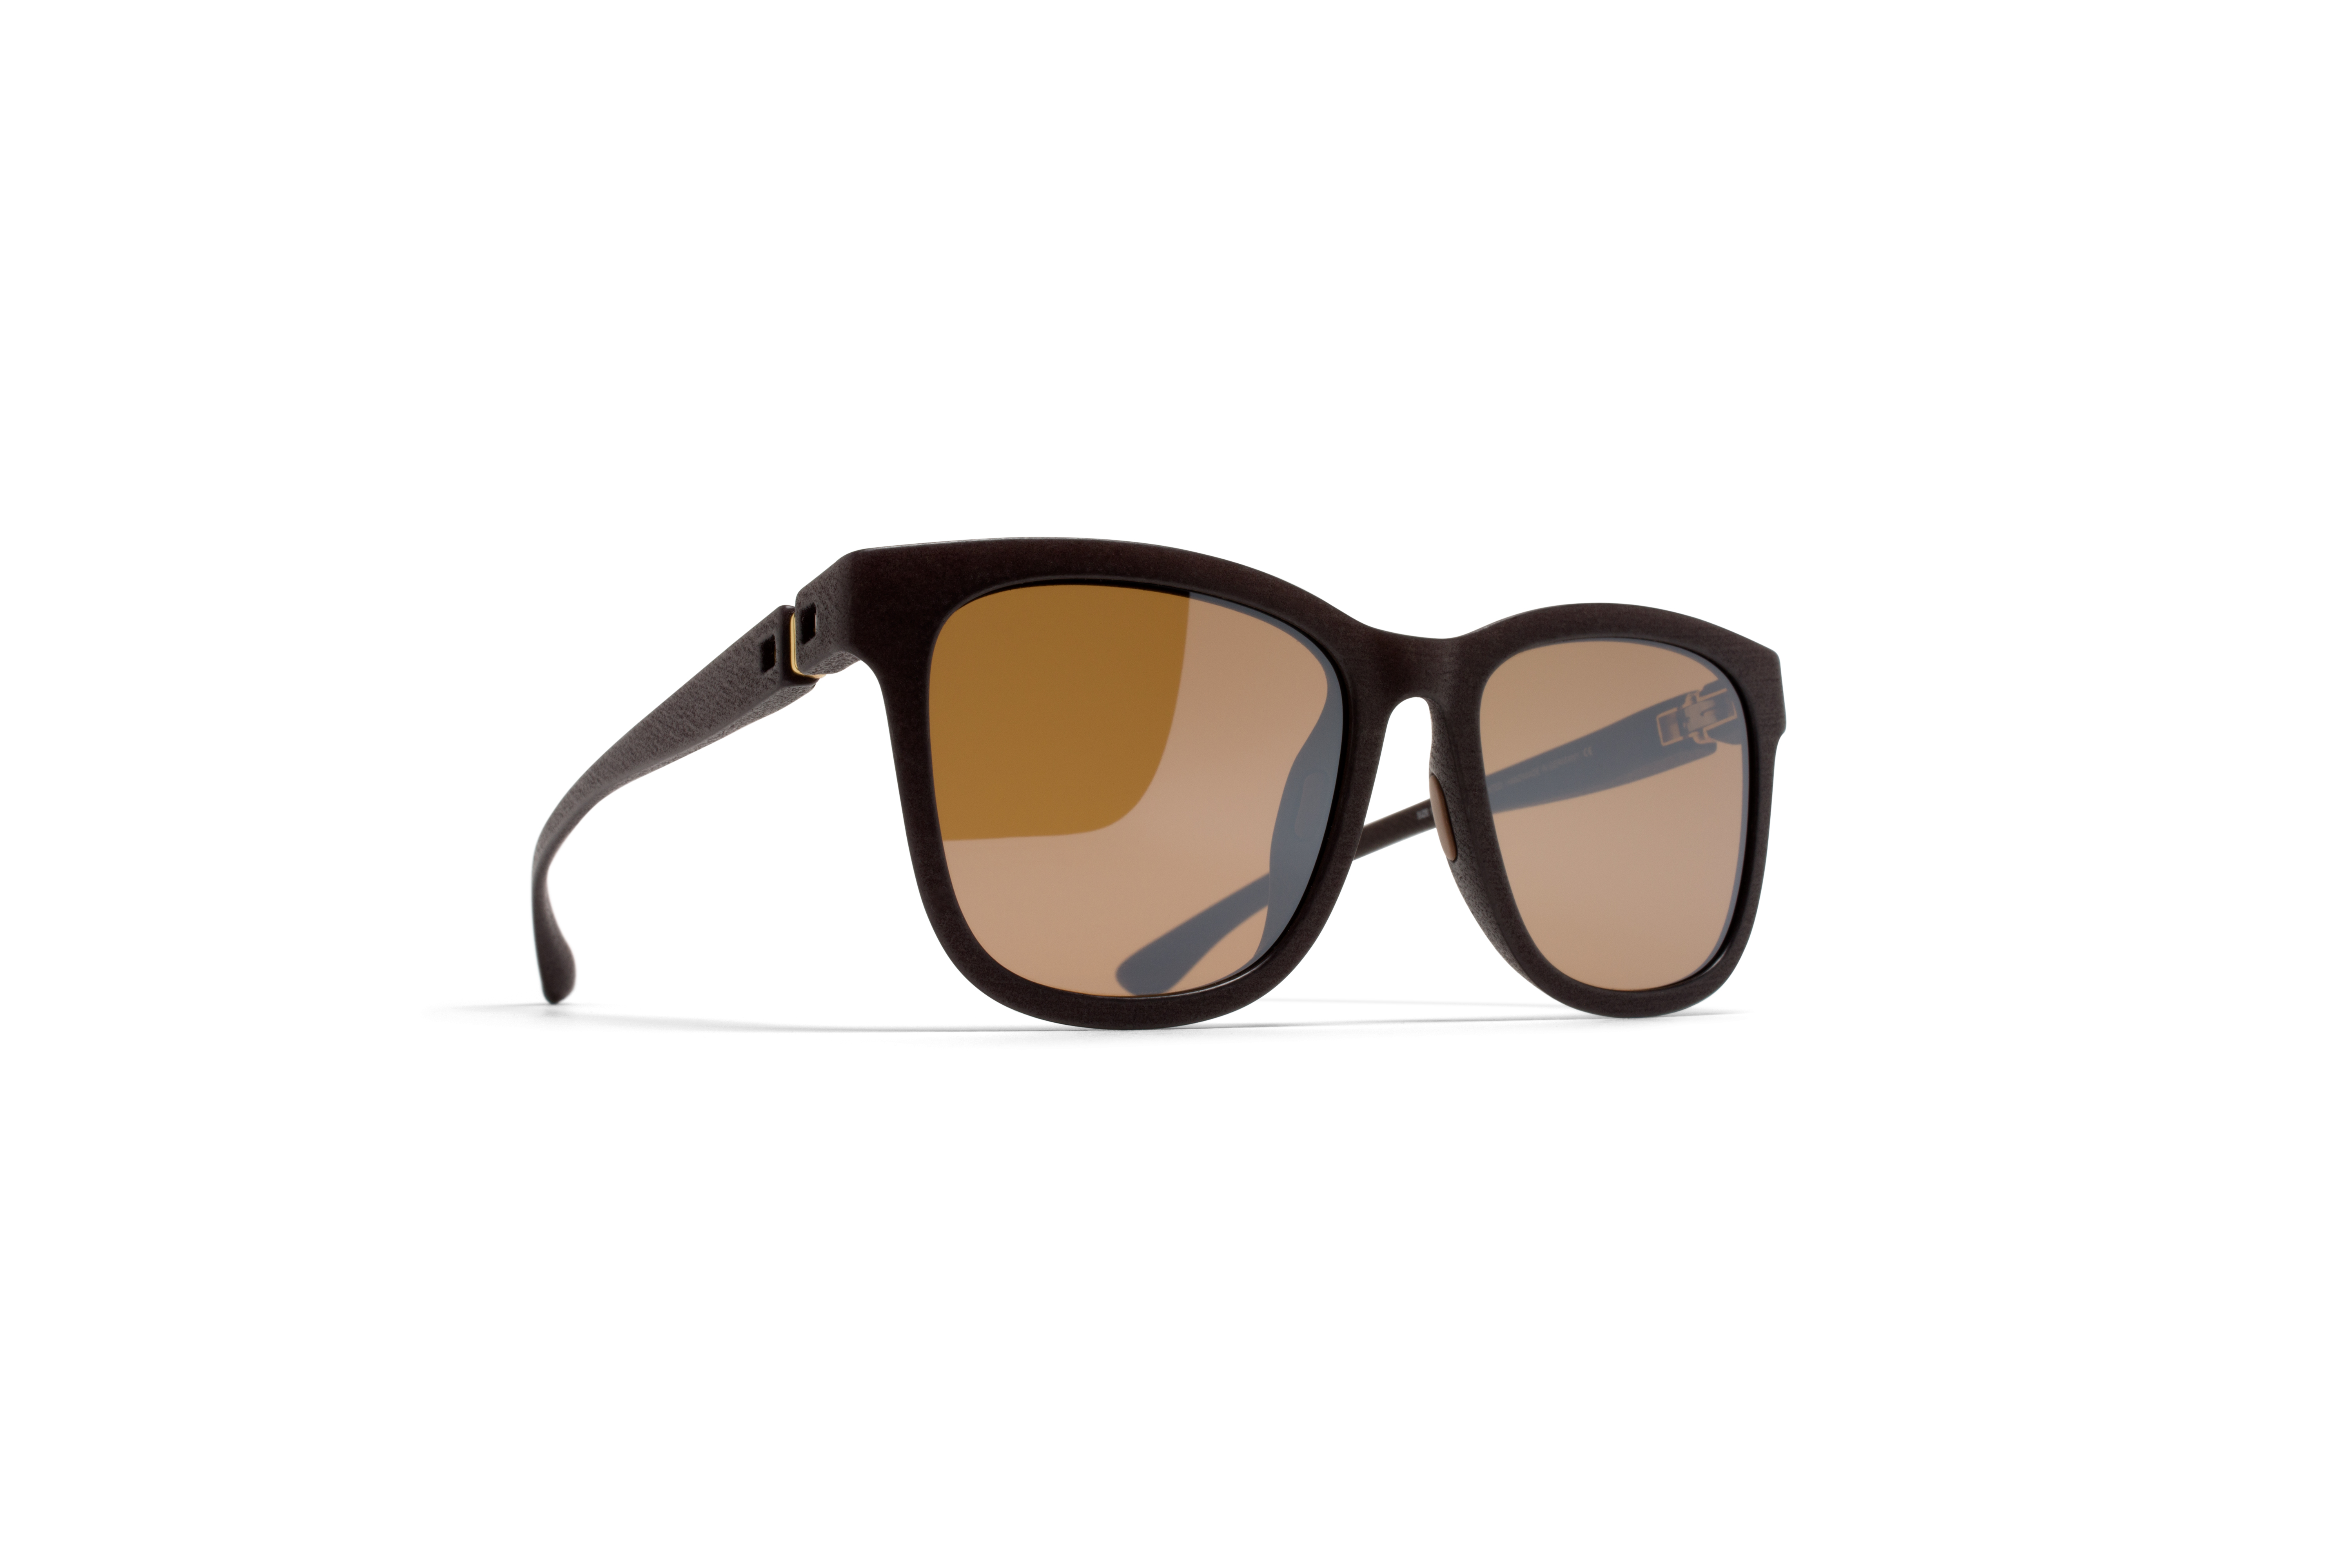 MYKITA Mylon Sun Levante Md22 Ebony Brown Siennabr570f97ca52a8a